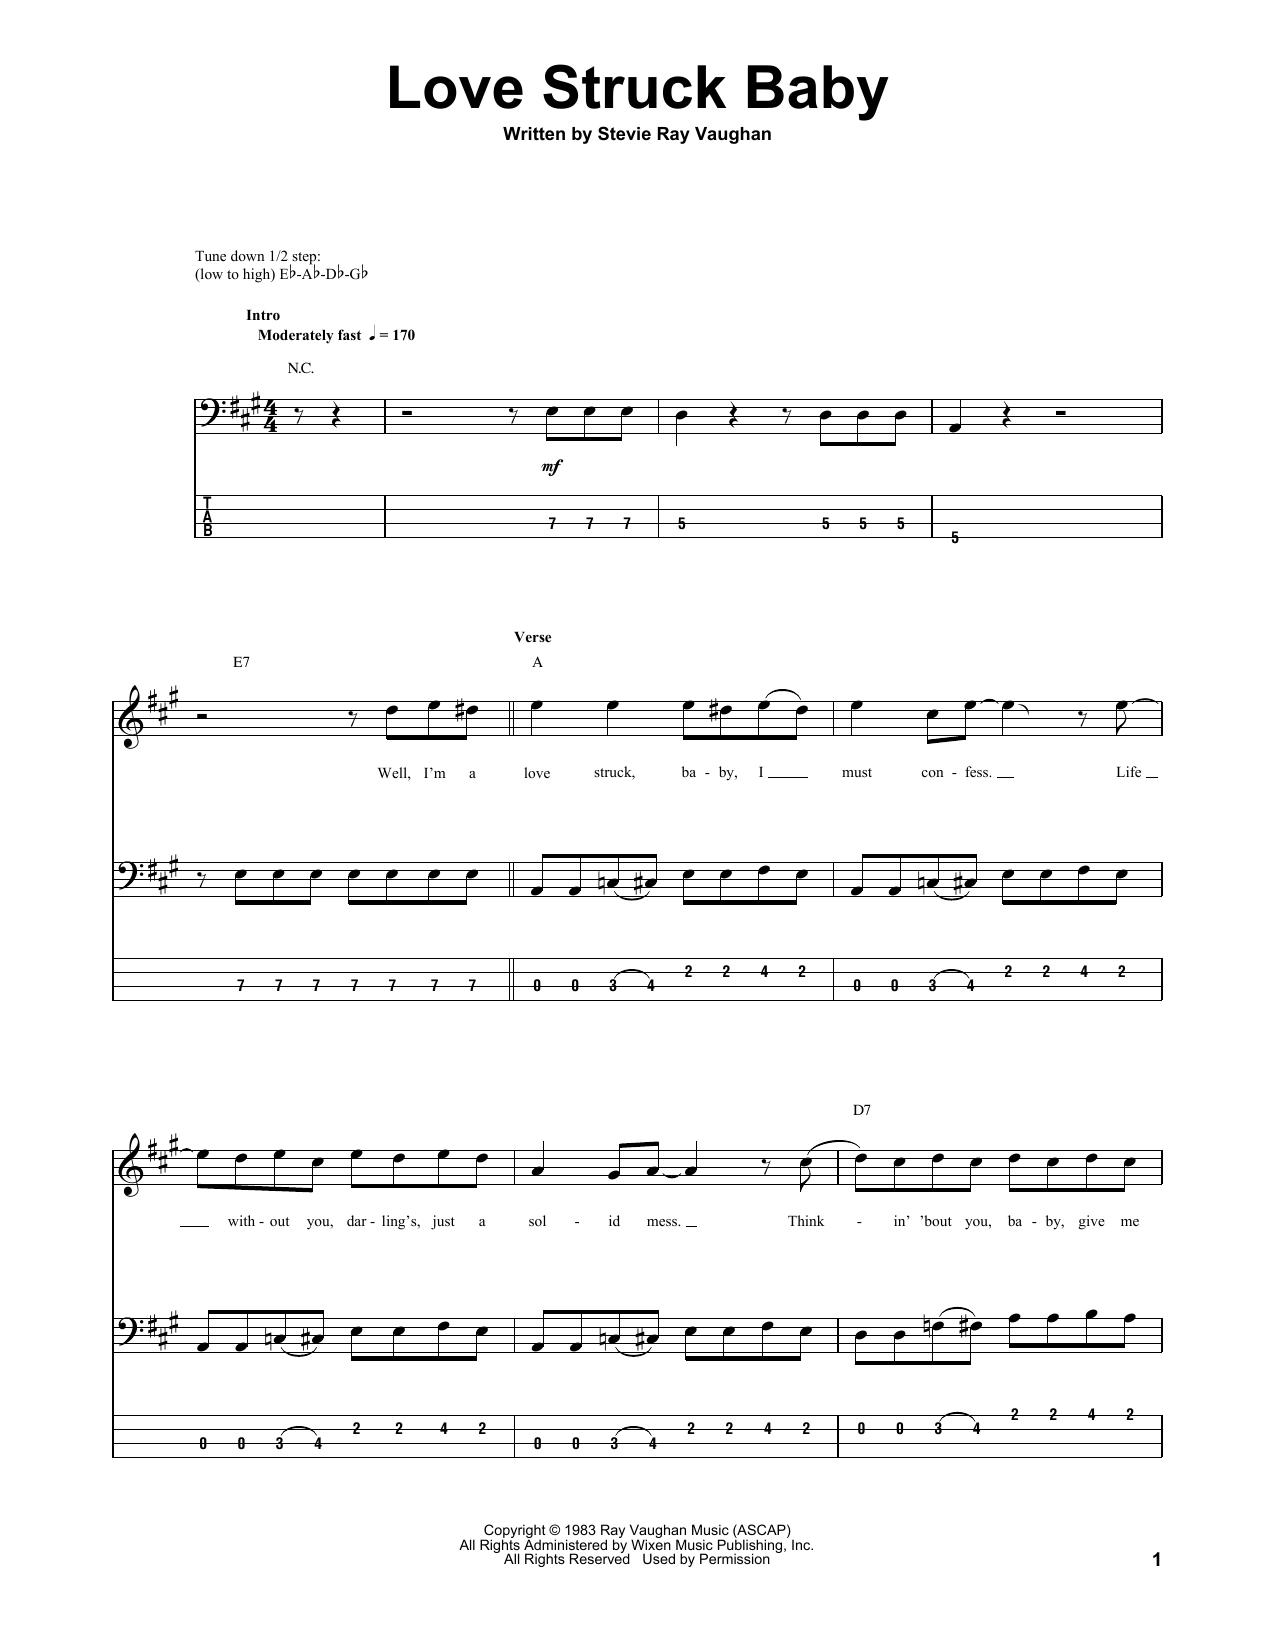 Tablature guitare Love Struck Baby de Stevie Ray Vaughan - Tablature Basse